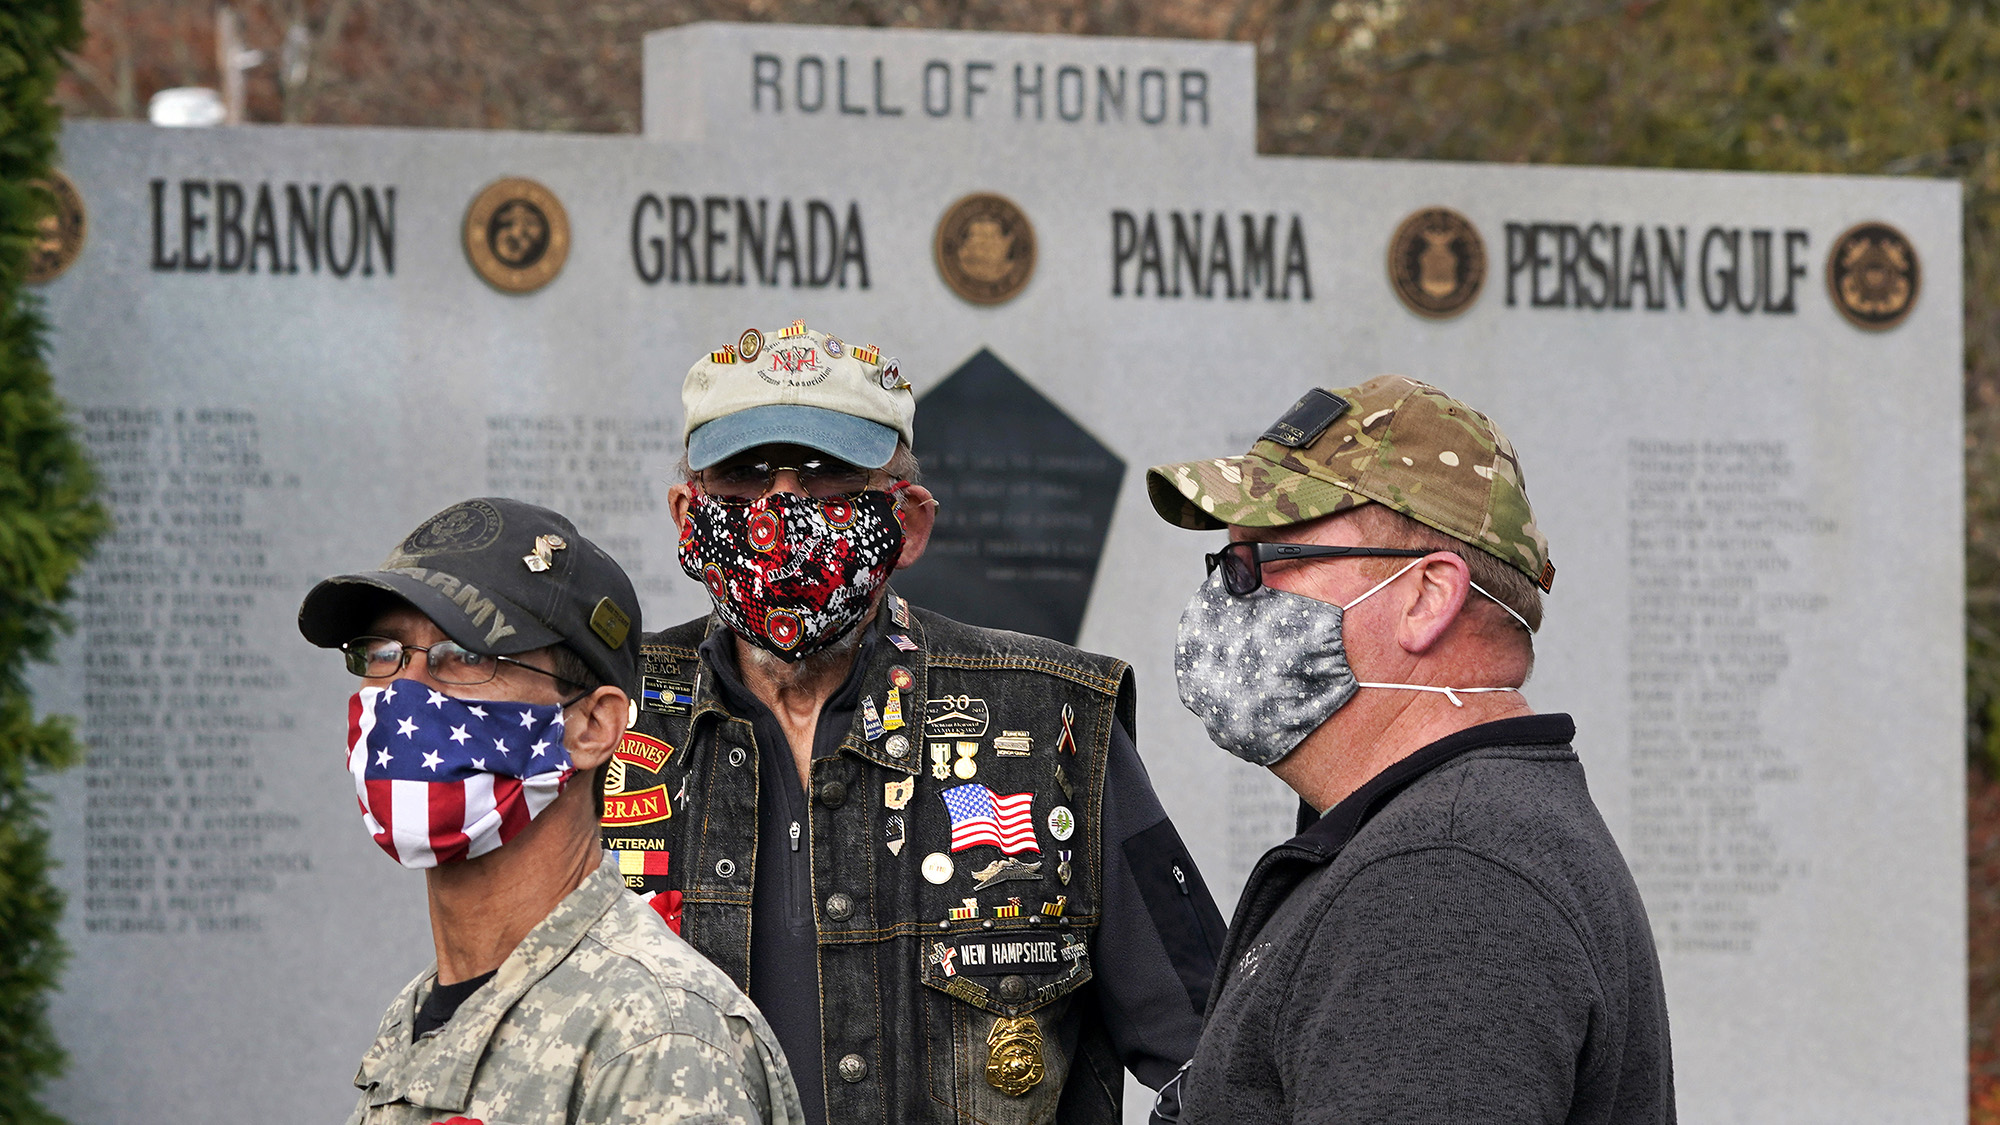 Veterans, wearing protective masks due to the COVID-19 virus outbreak, gather during a Veterans Day ceremony, Wednesday, Nov. 11, 2020, in Derry, N.H. (Charles Krupa/AP)